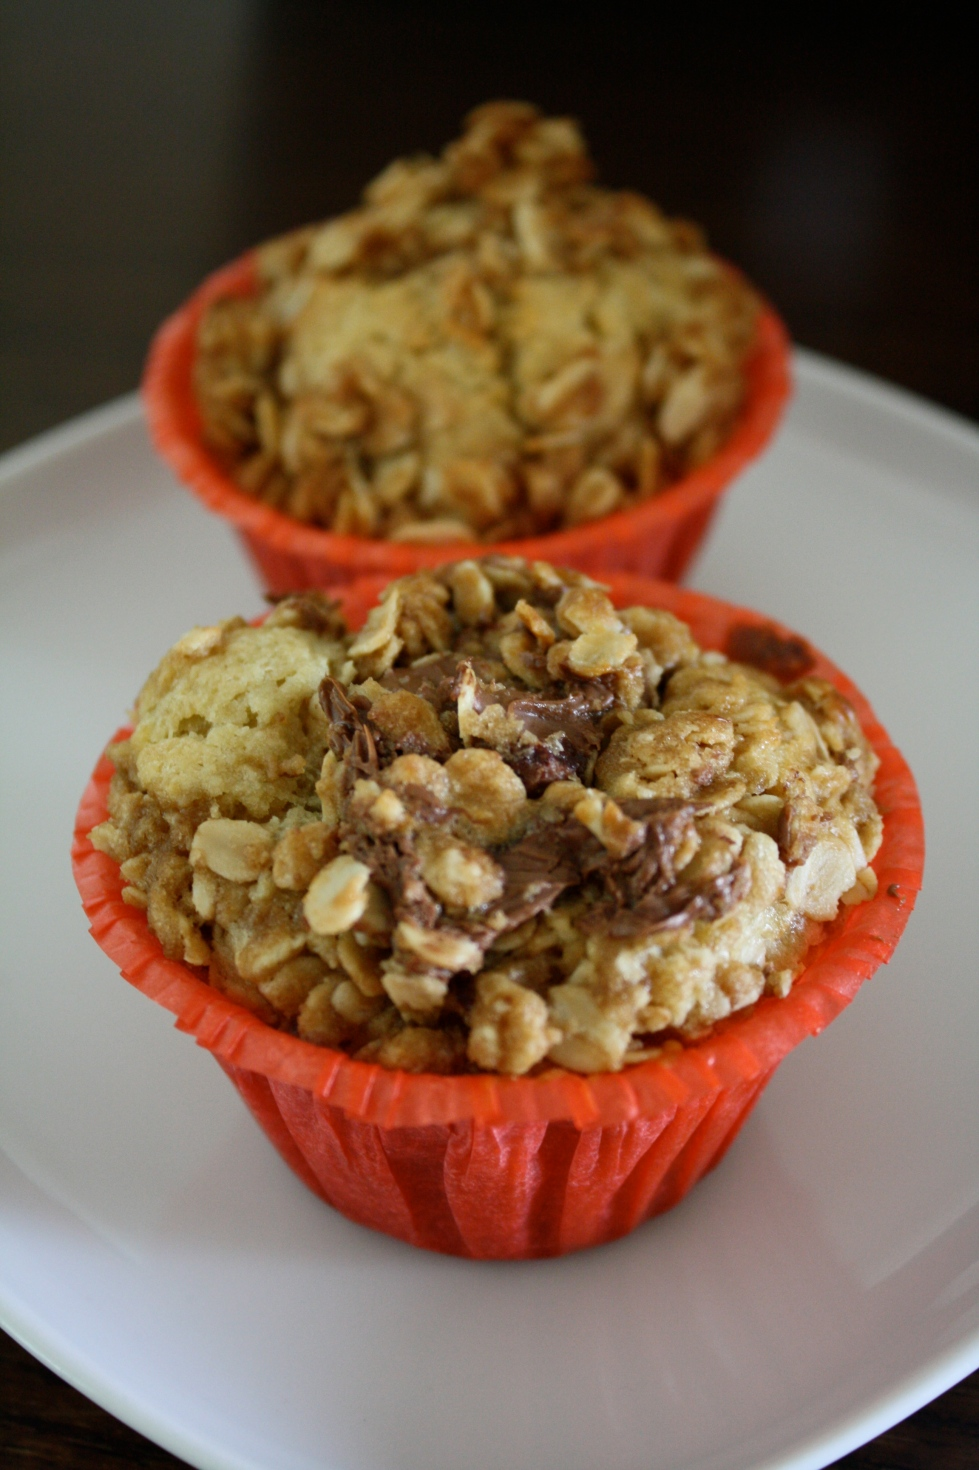 Banana Cupcakes with Oat Streusel Topping (and an optional dollop of Nutella)